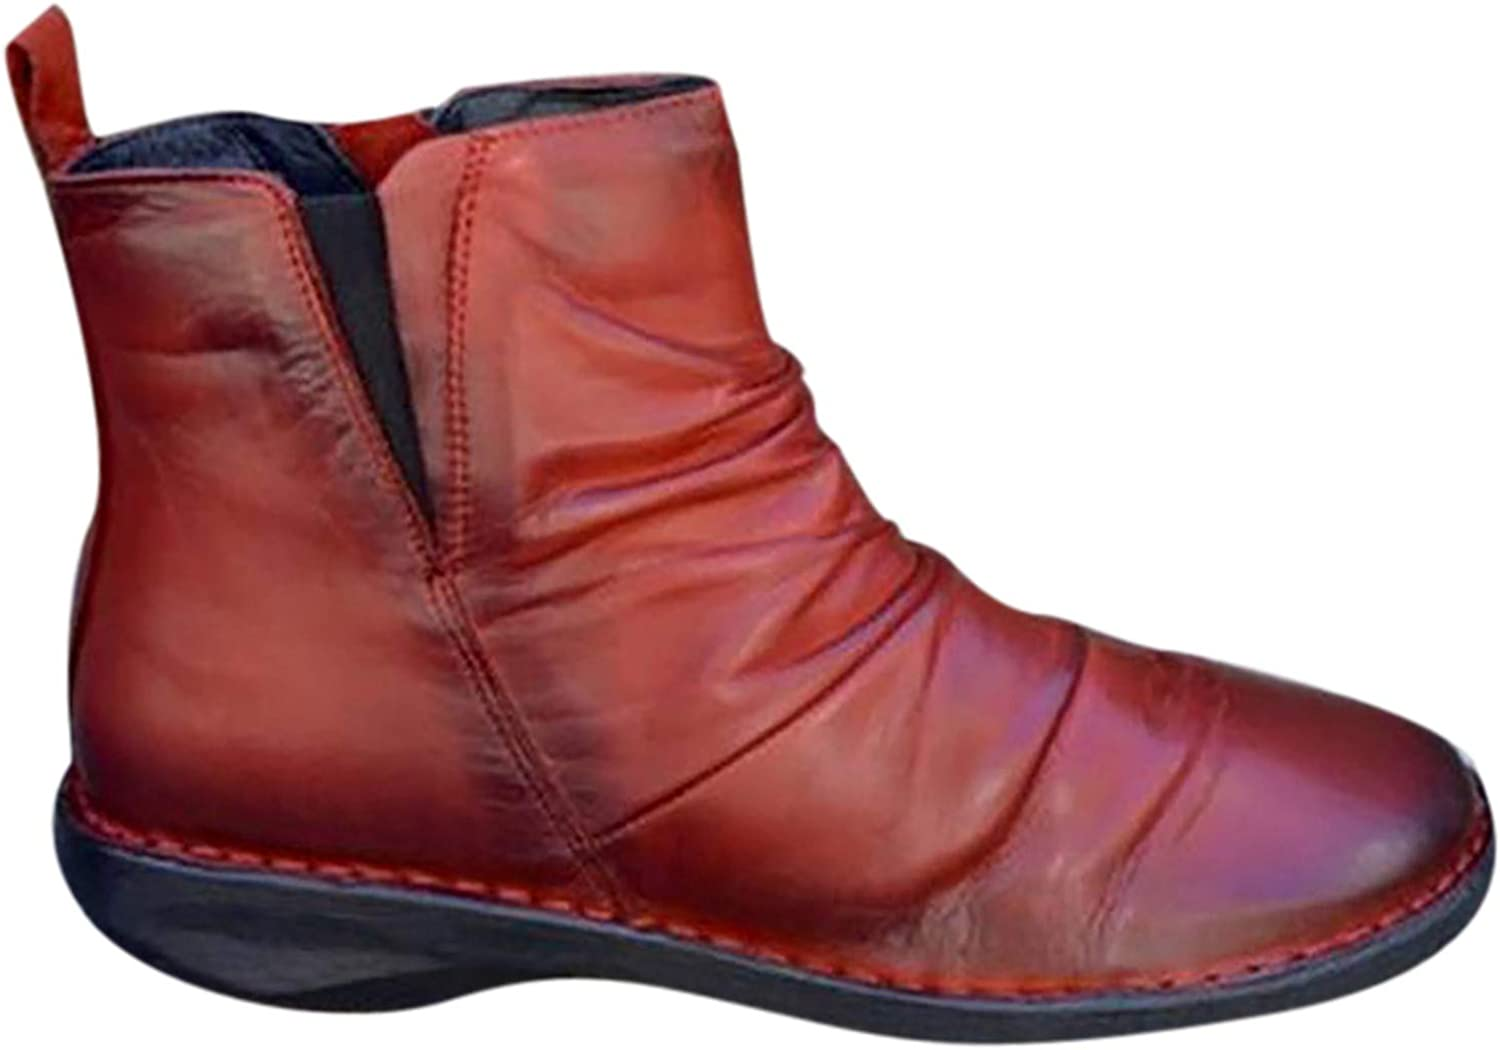 Winsummer 数量限定 Women's Slouchy Short Boots Leather Casual 祝開店大放出セール開催中 Toe Round S